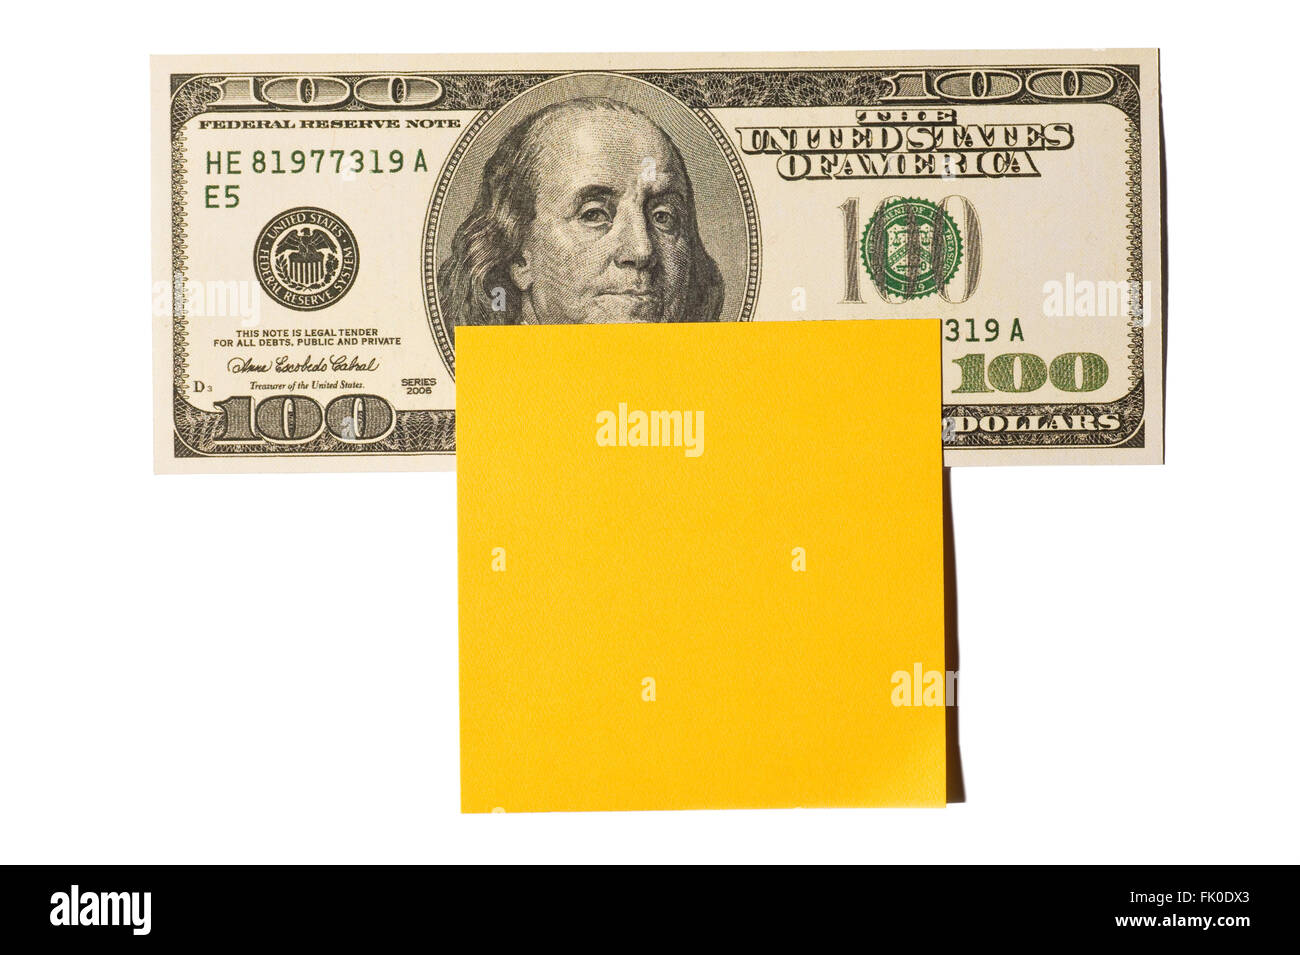 Hundred Dollar Bill With Gold Post-it Note - Stock Image